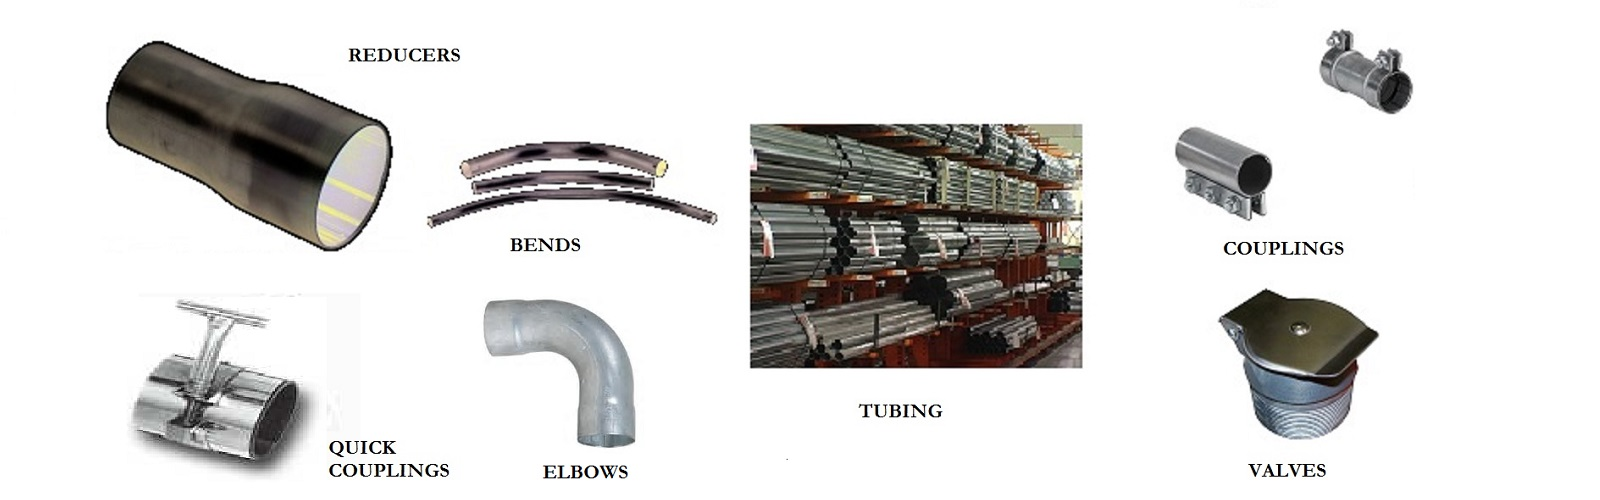 vacuum bends elbows valves couplings tubing quick couplings